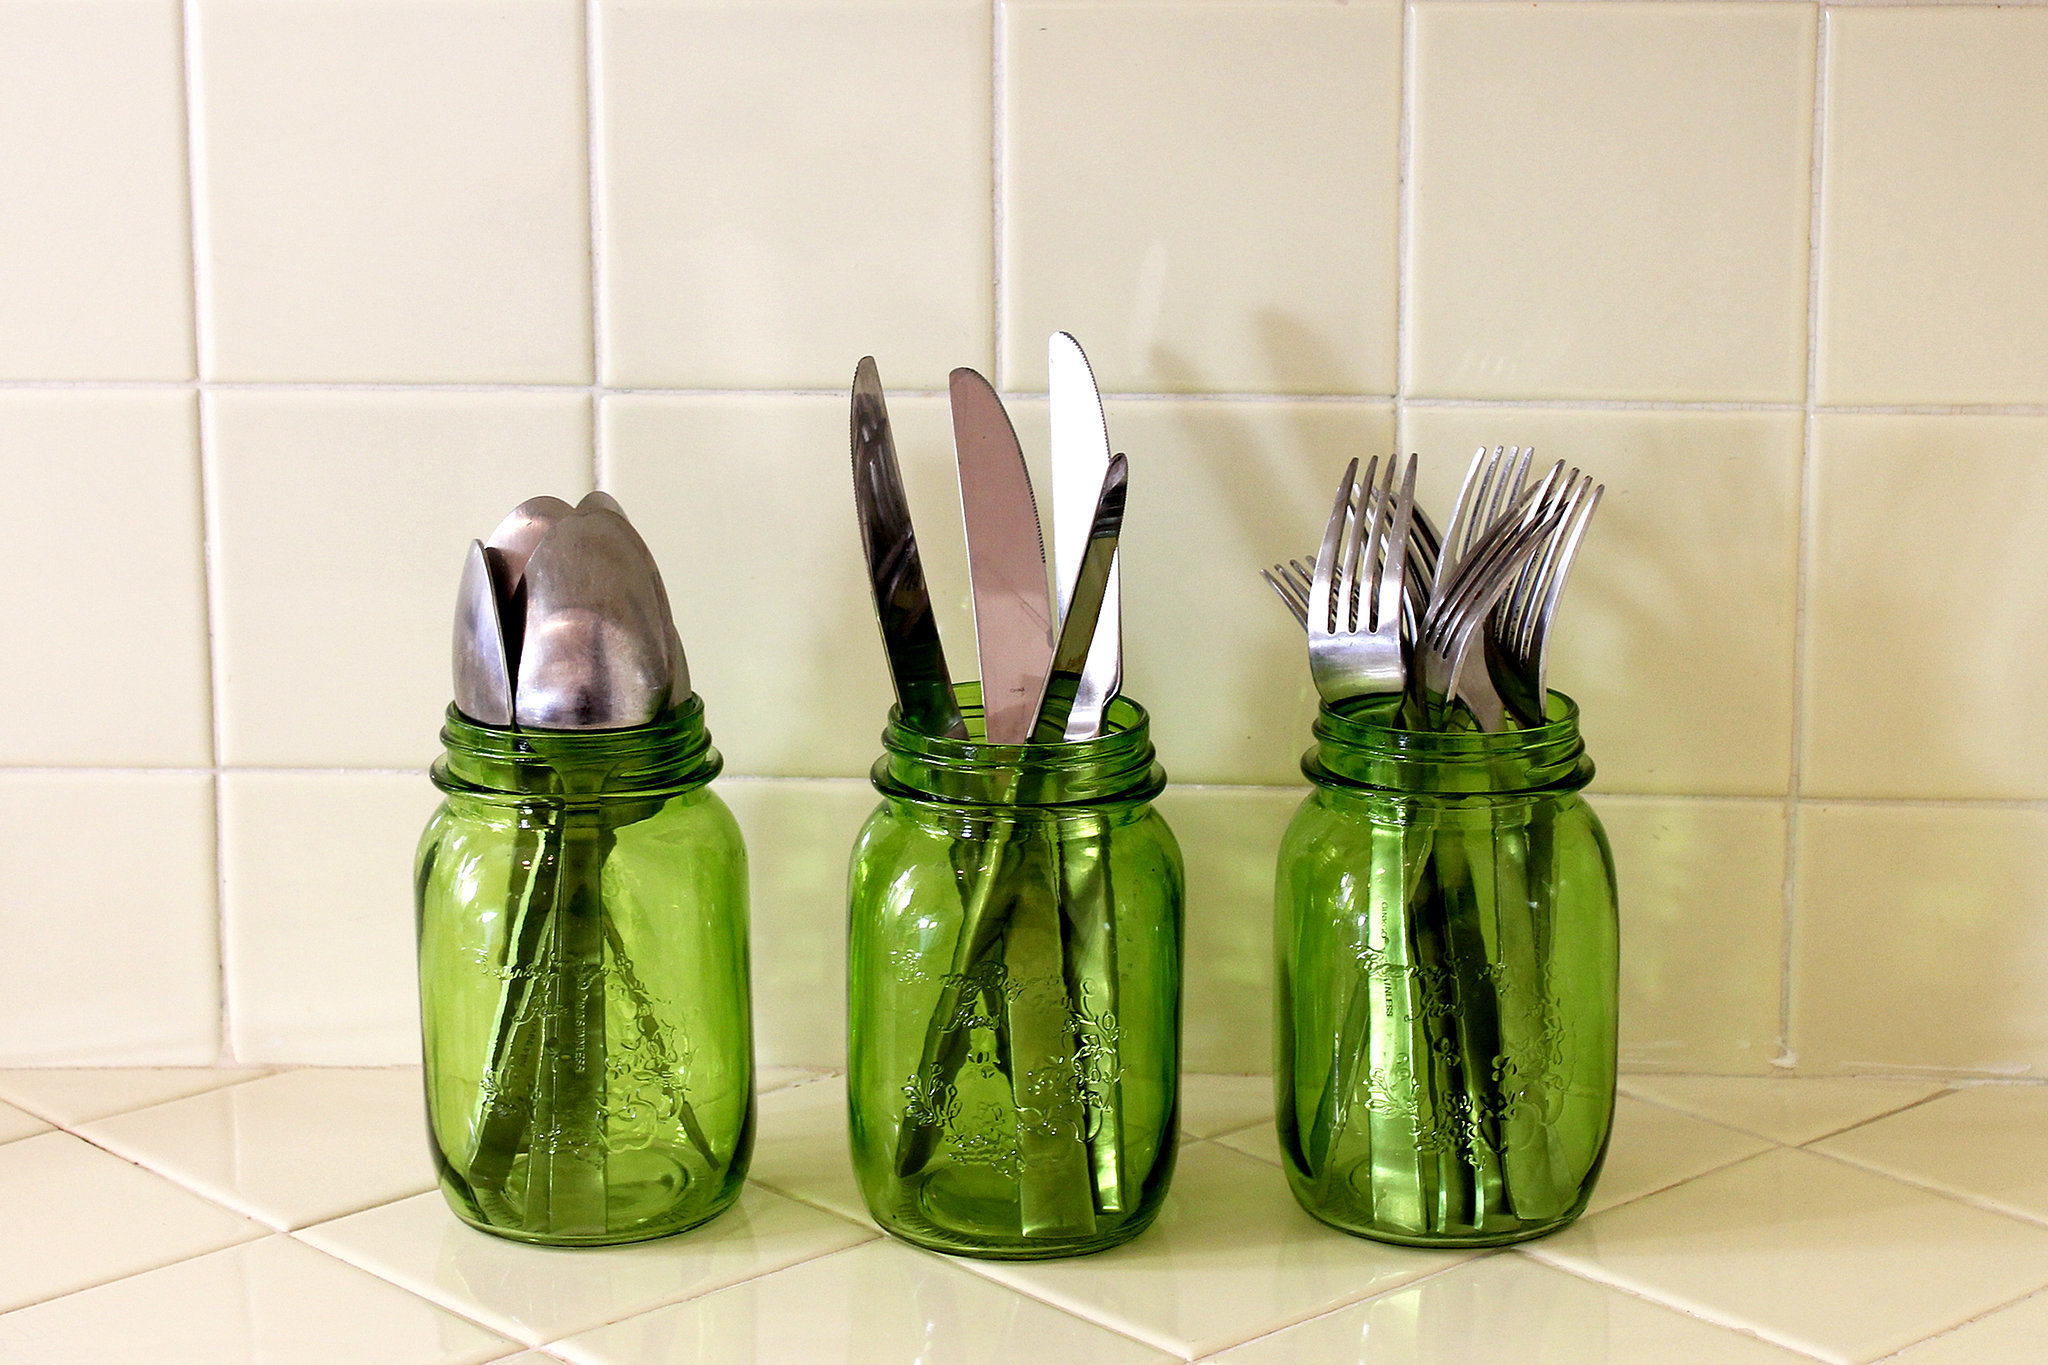 Another great tip from Emily: don't be afraid to invade your parents' garage — that's where she got all her silverware. The green mason jars? Those were a thoughtful gift.